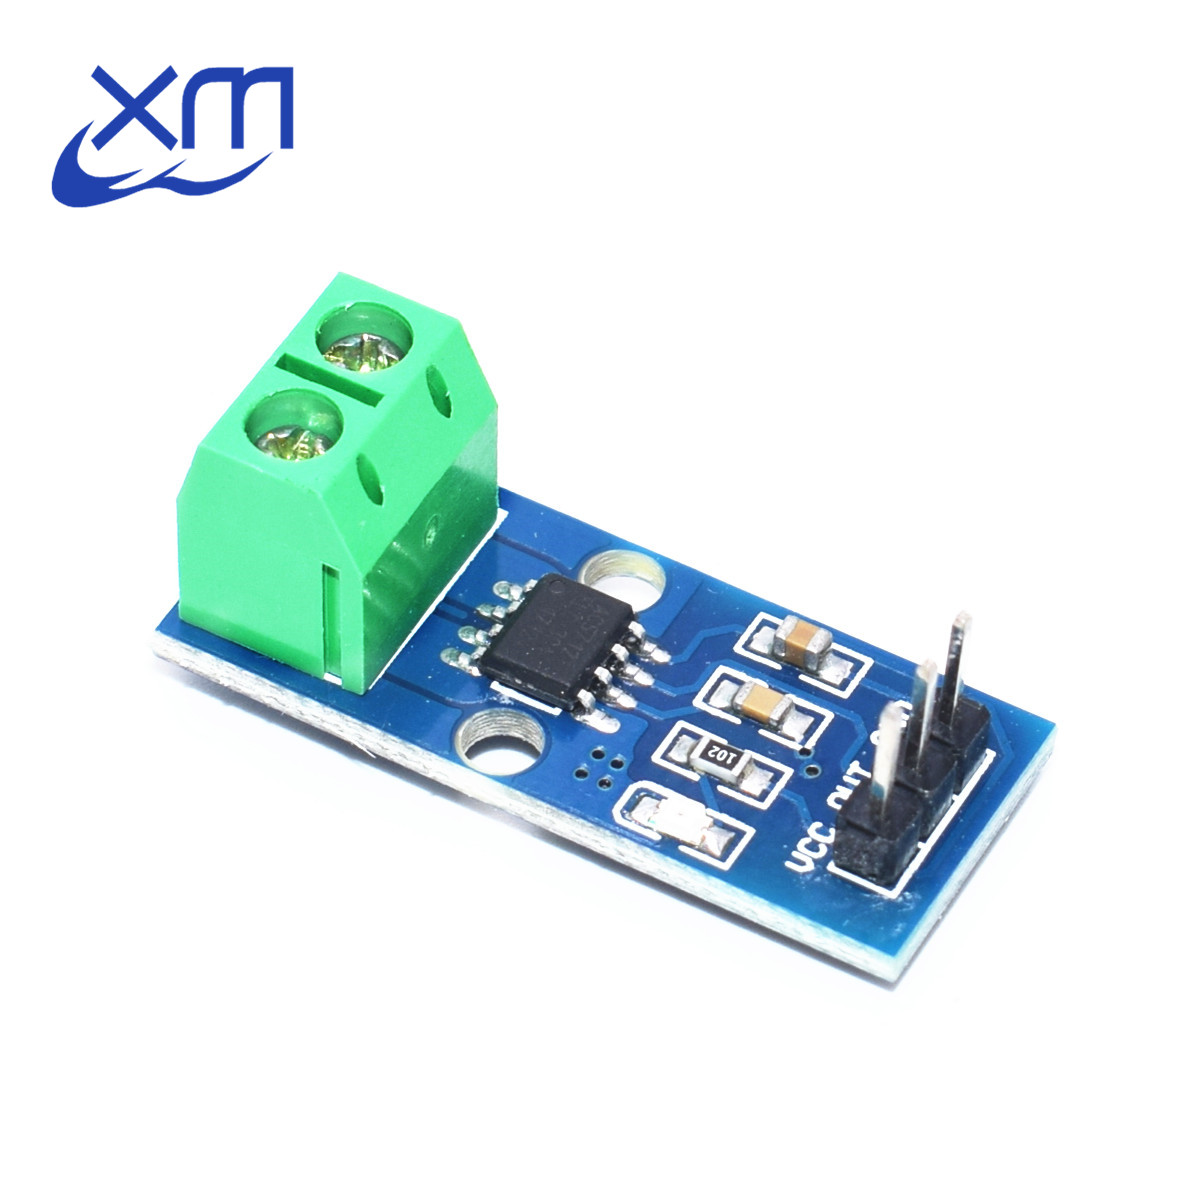 NEW 30A Hall Current Sensor Module <font><b>ACS712</b></font> model 30A In stock high quality <font><b>10pcs</b></font> A14 image